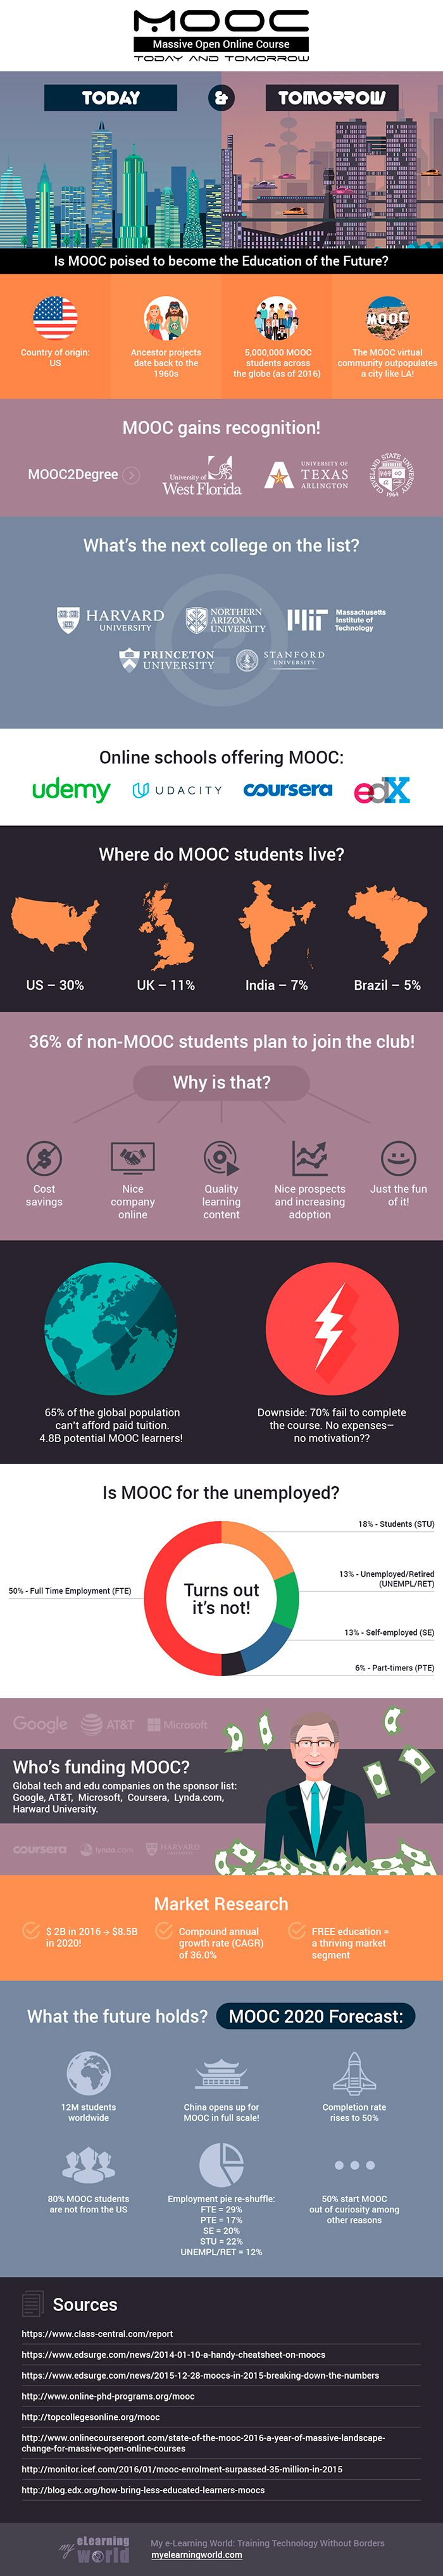 Mooc Today And Tomorrow Infographic E Learning Infographics Educational Infographic Infographic Elearning